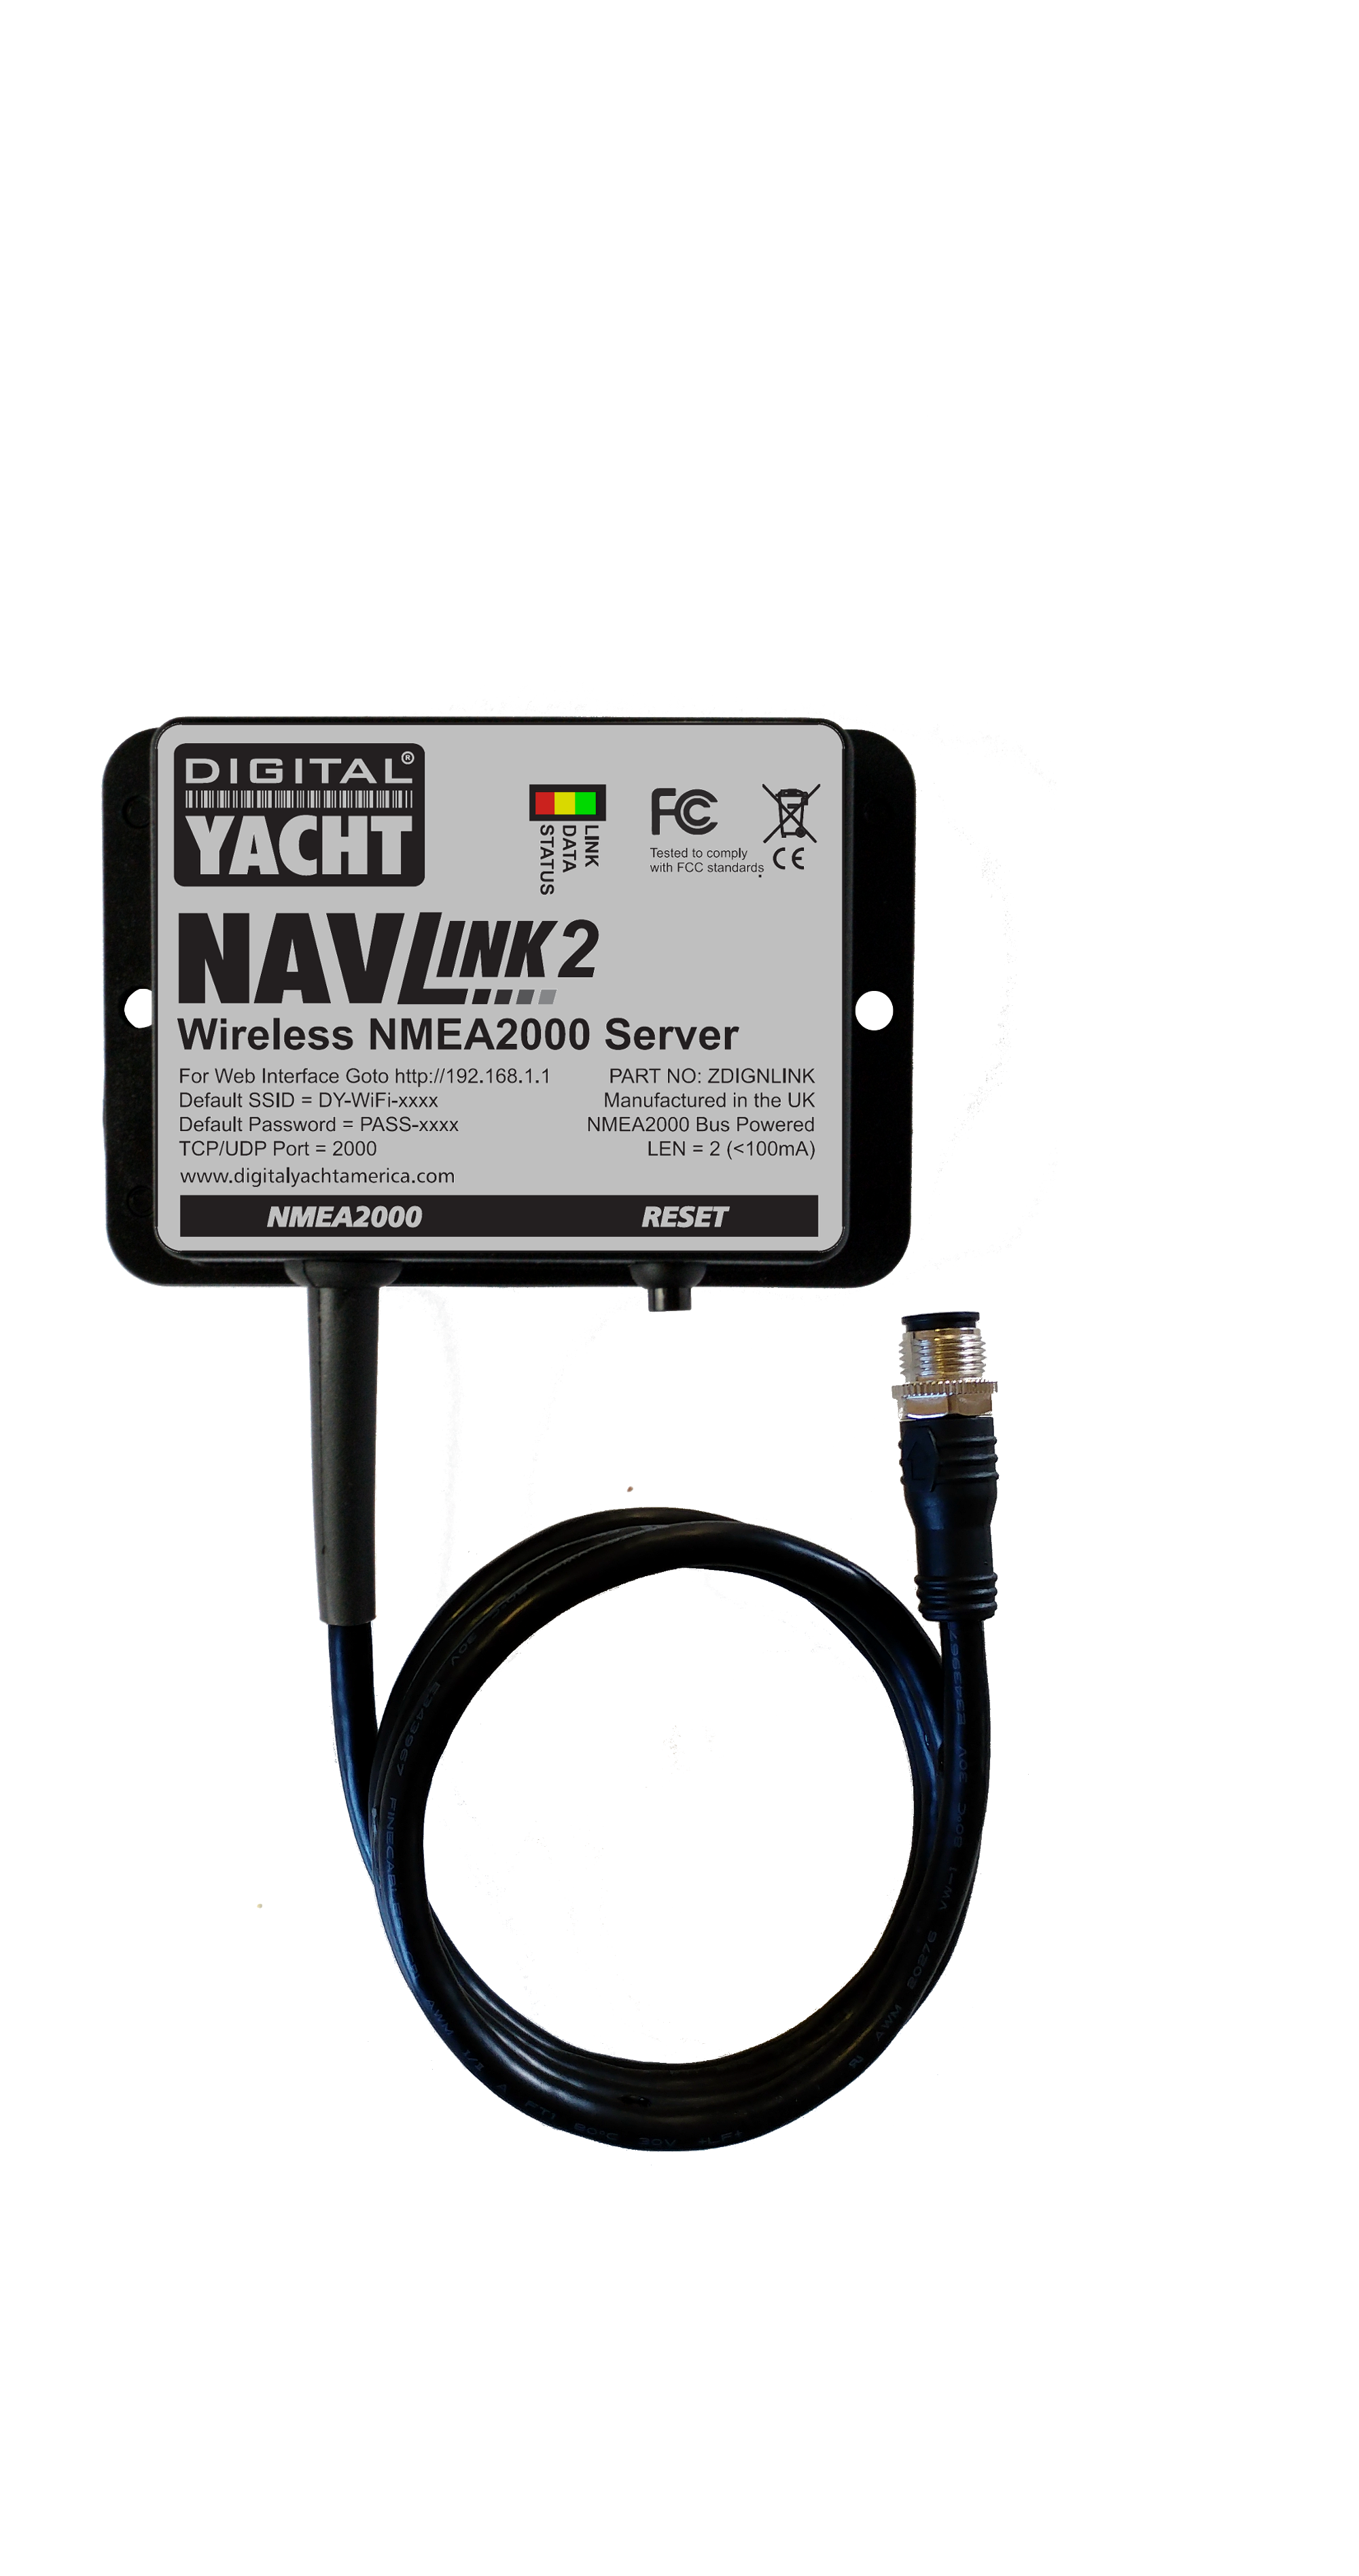 NavLink2 and its NMEA2000 cable